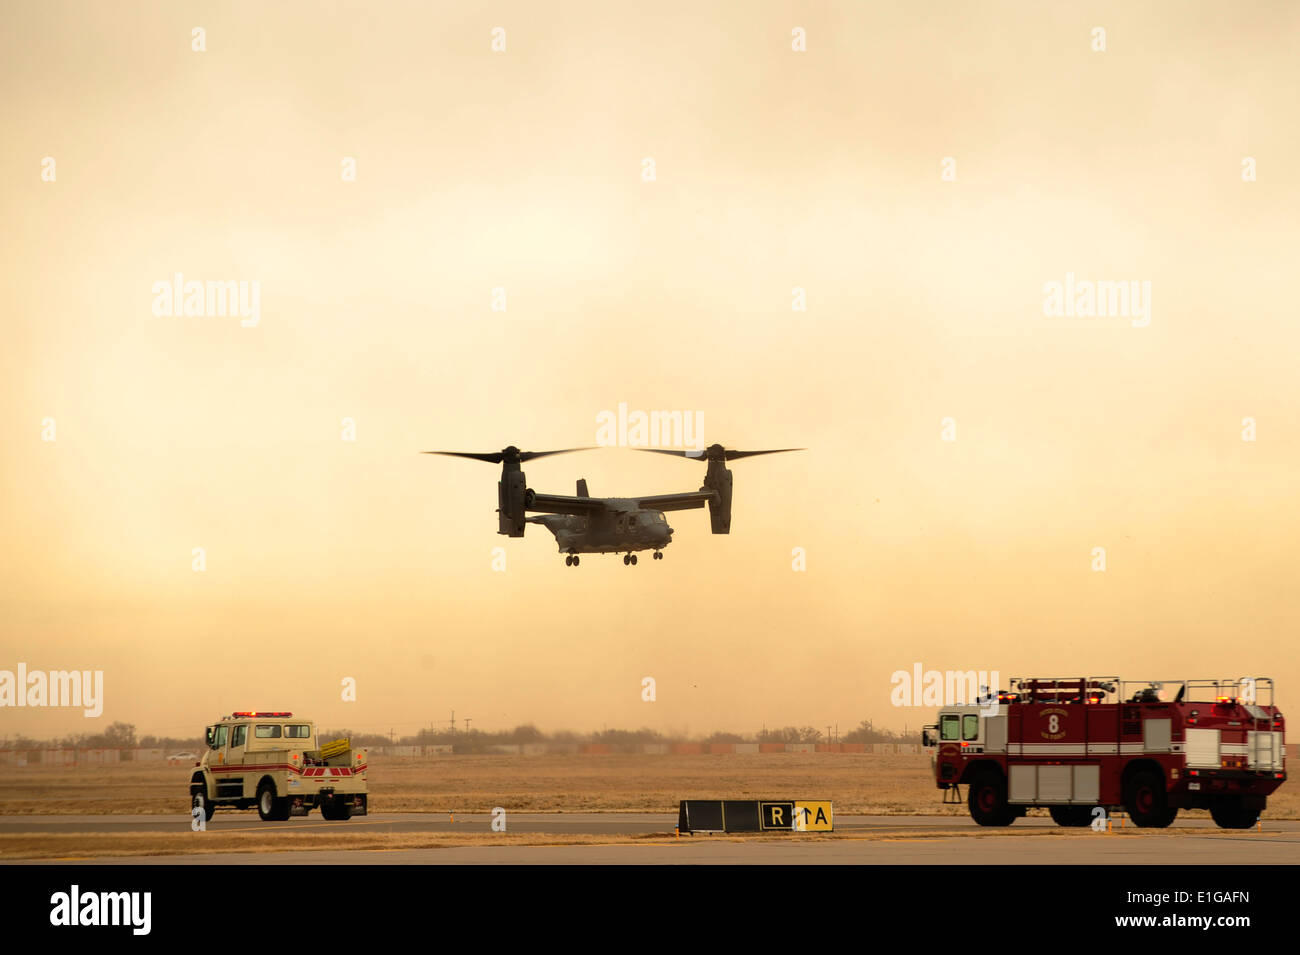 A U.S. Air Force CV-22 Osprey tiltrotor aircraft performs an in-flight emergency landing during exercise Emerald Warrior at Can - Stock Image